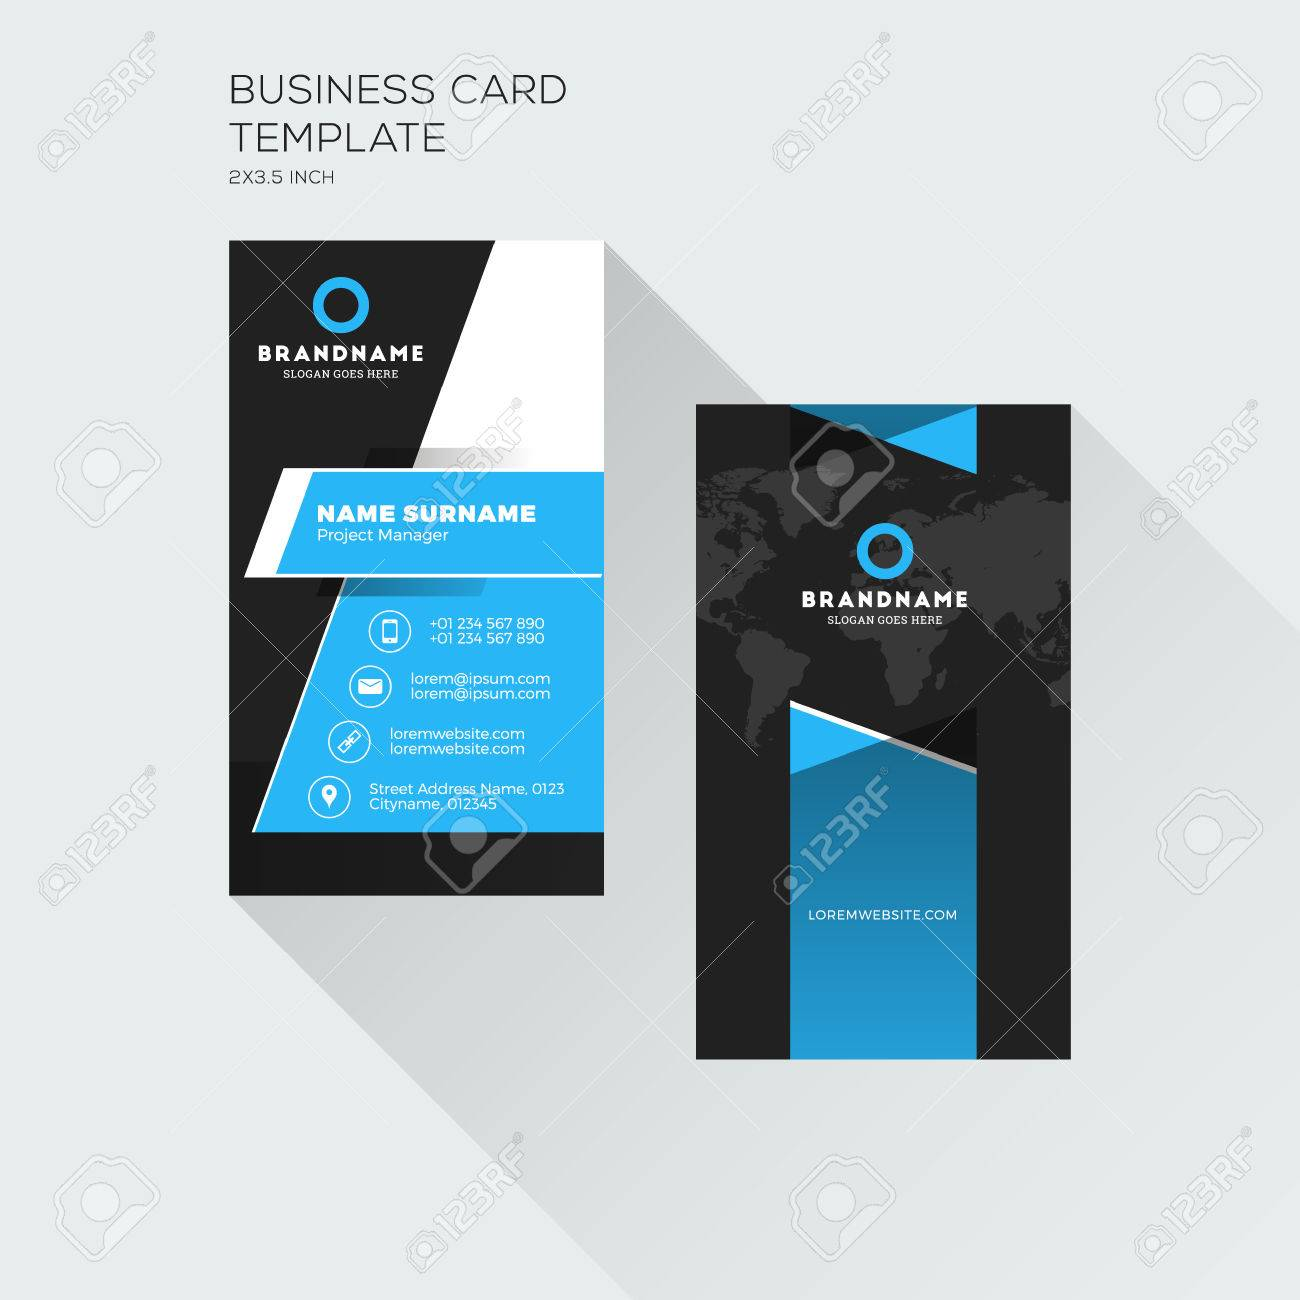 vertical business card print template personal visiting card black and blue colors clean